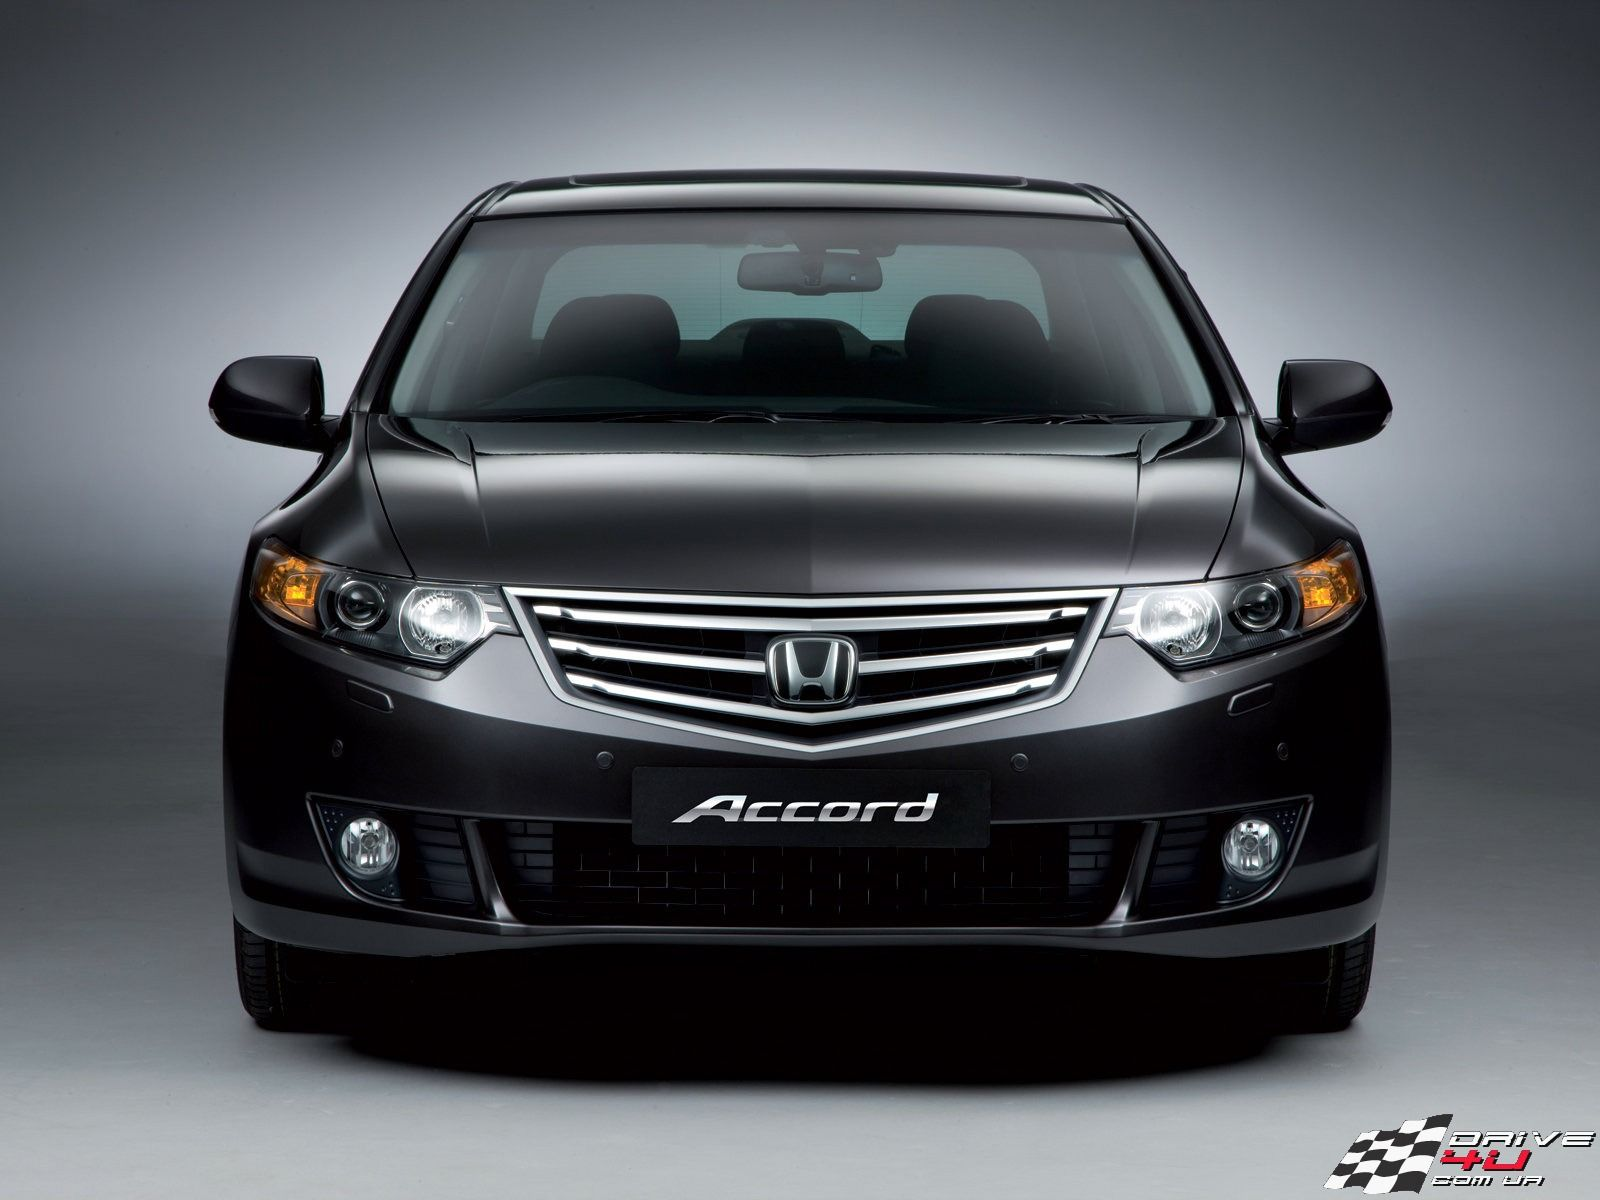 Beau Cars Usa · Image For HD Honda Backgrounds U0026 Honda Wallpaper Images For  Download